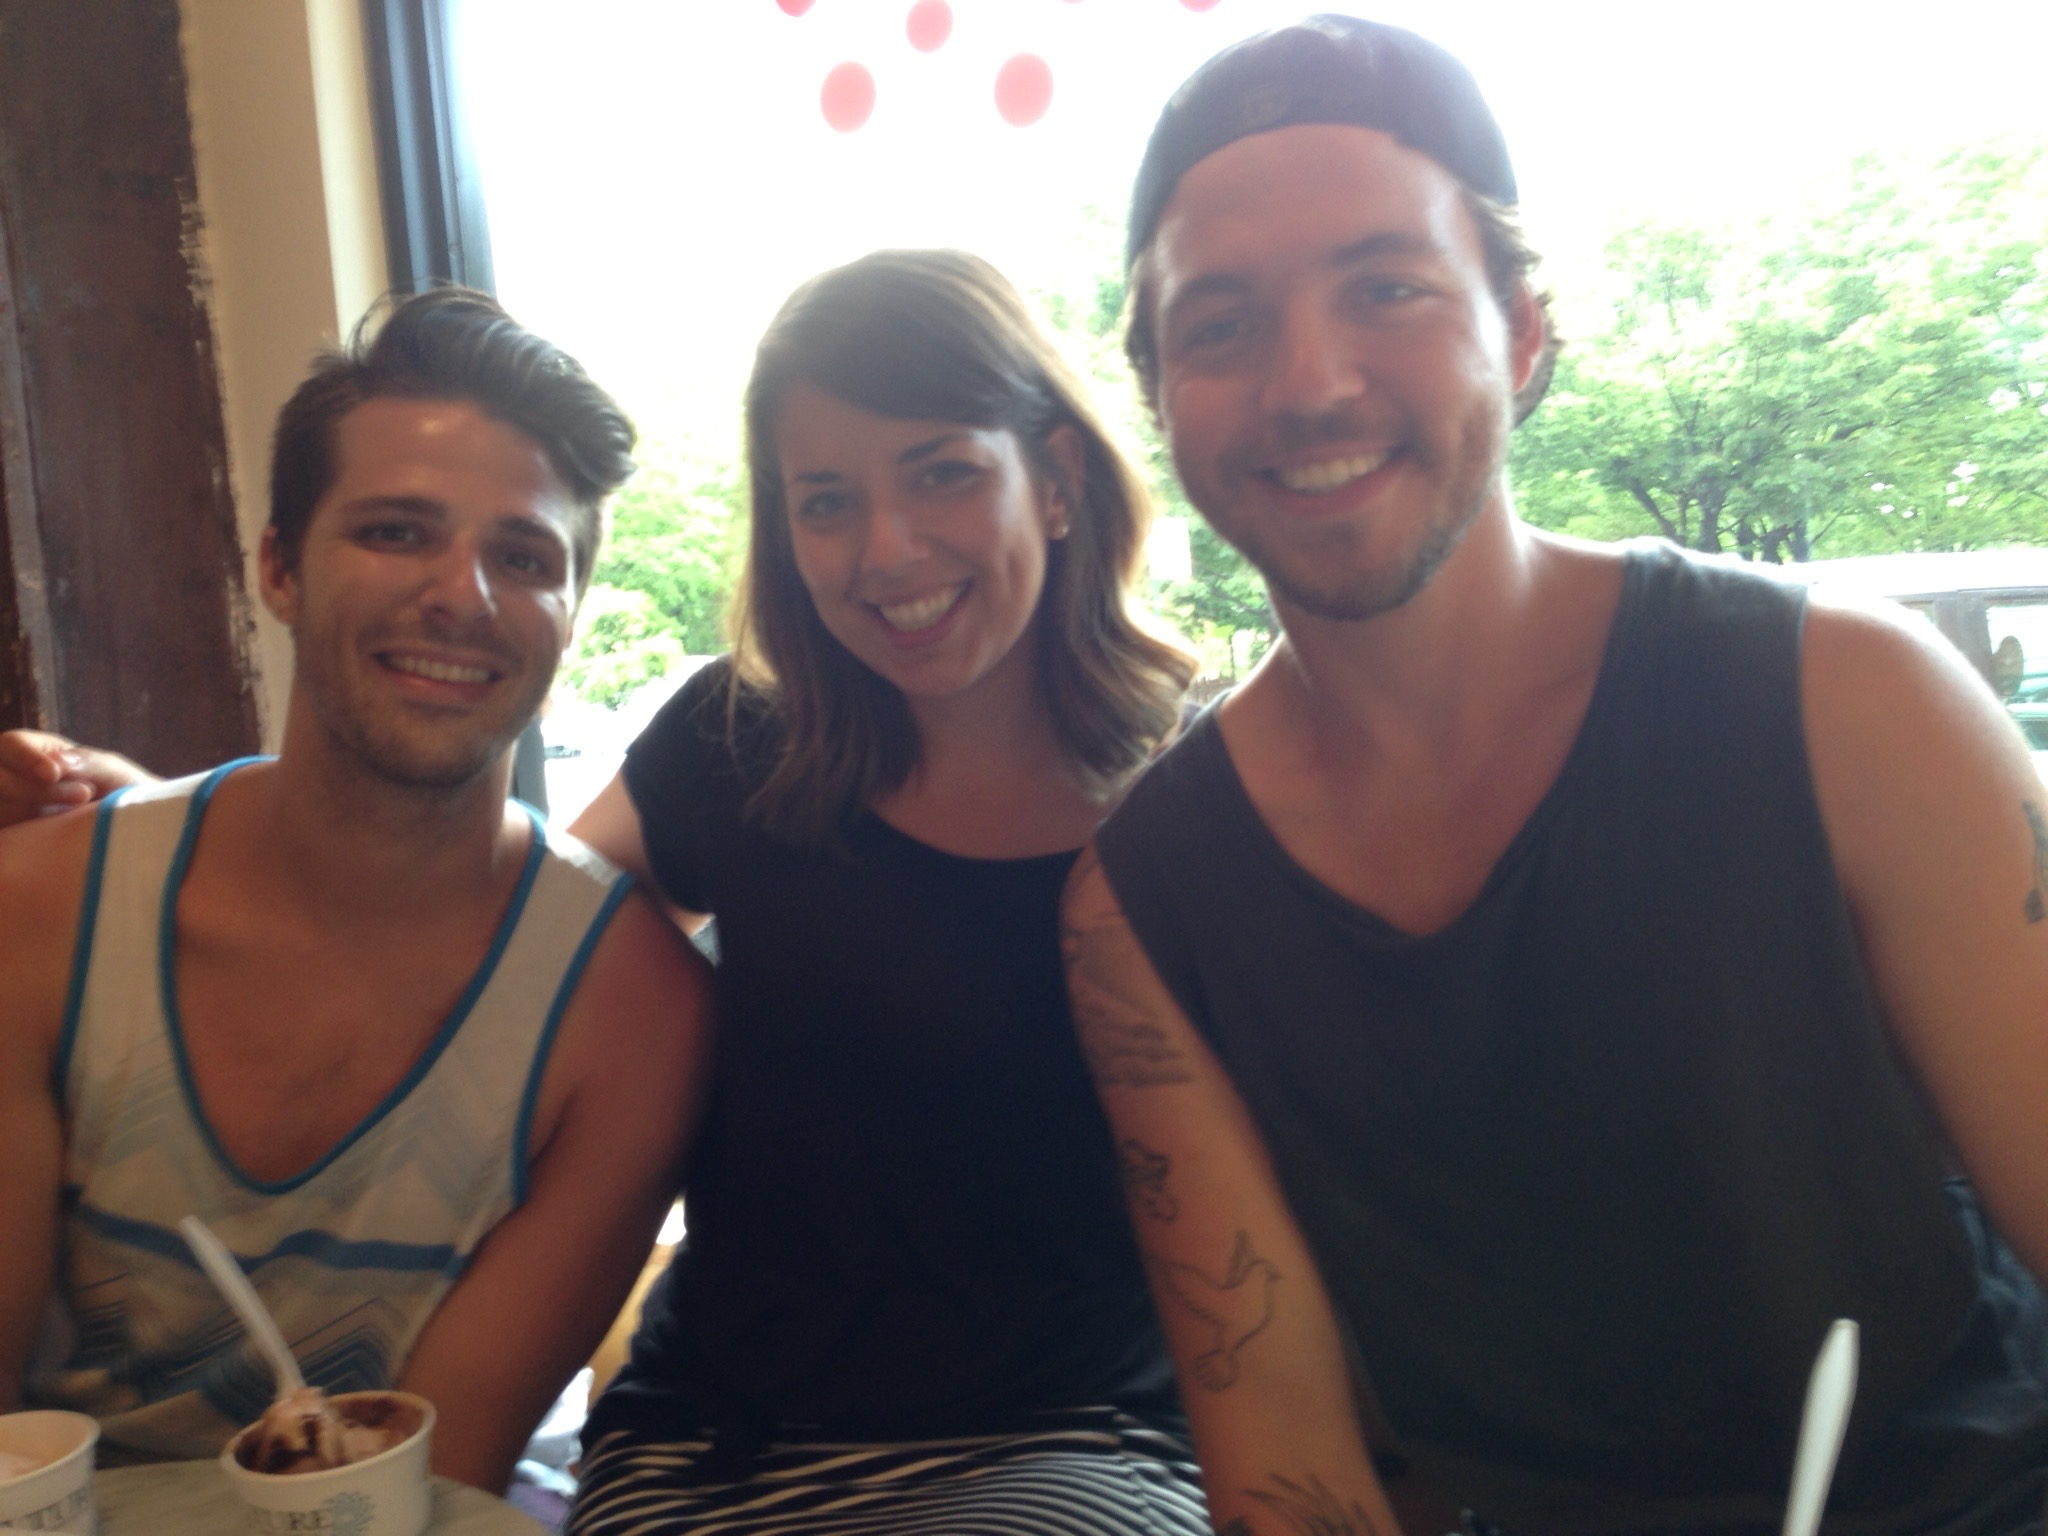 Sweaty and soaked, the perfect first date impression. Having ice cream with Brandon and Matty (and mom) before heading to the airport.